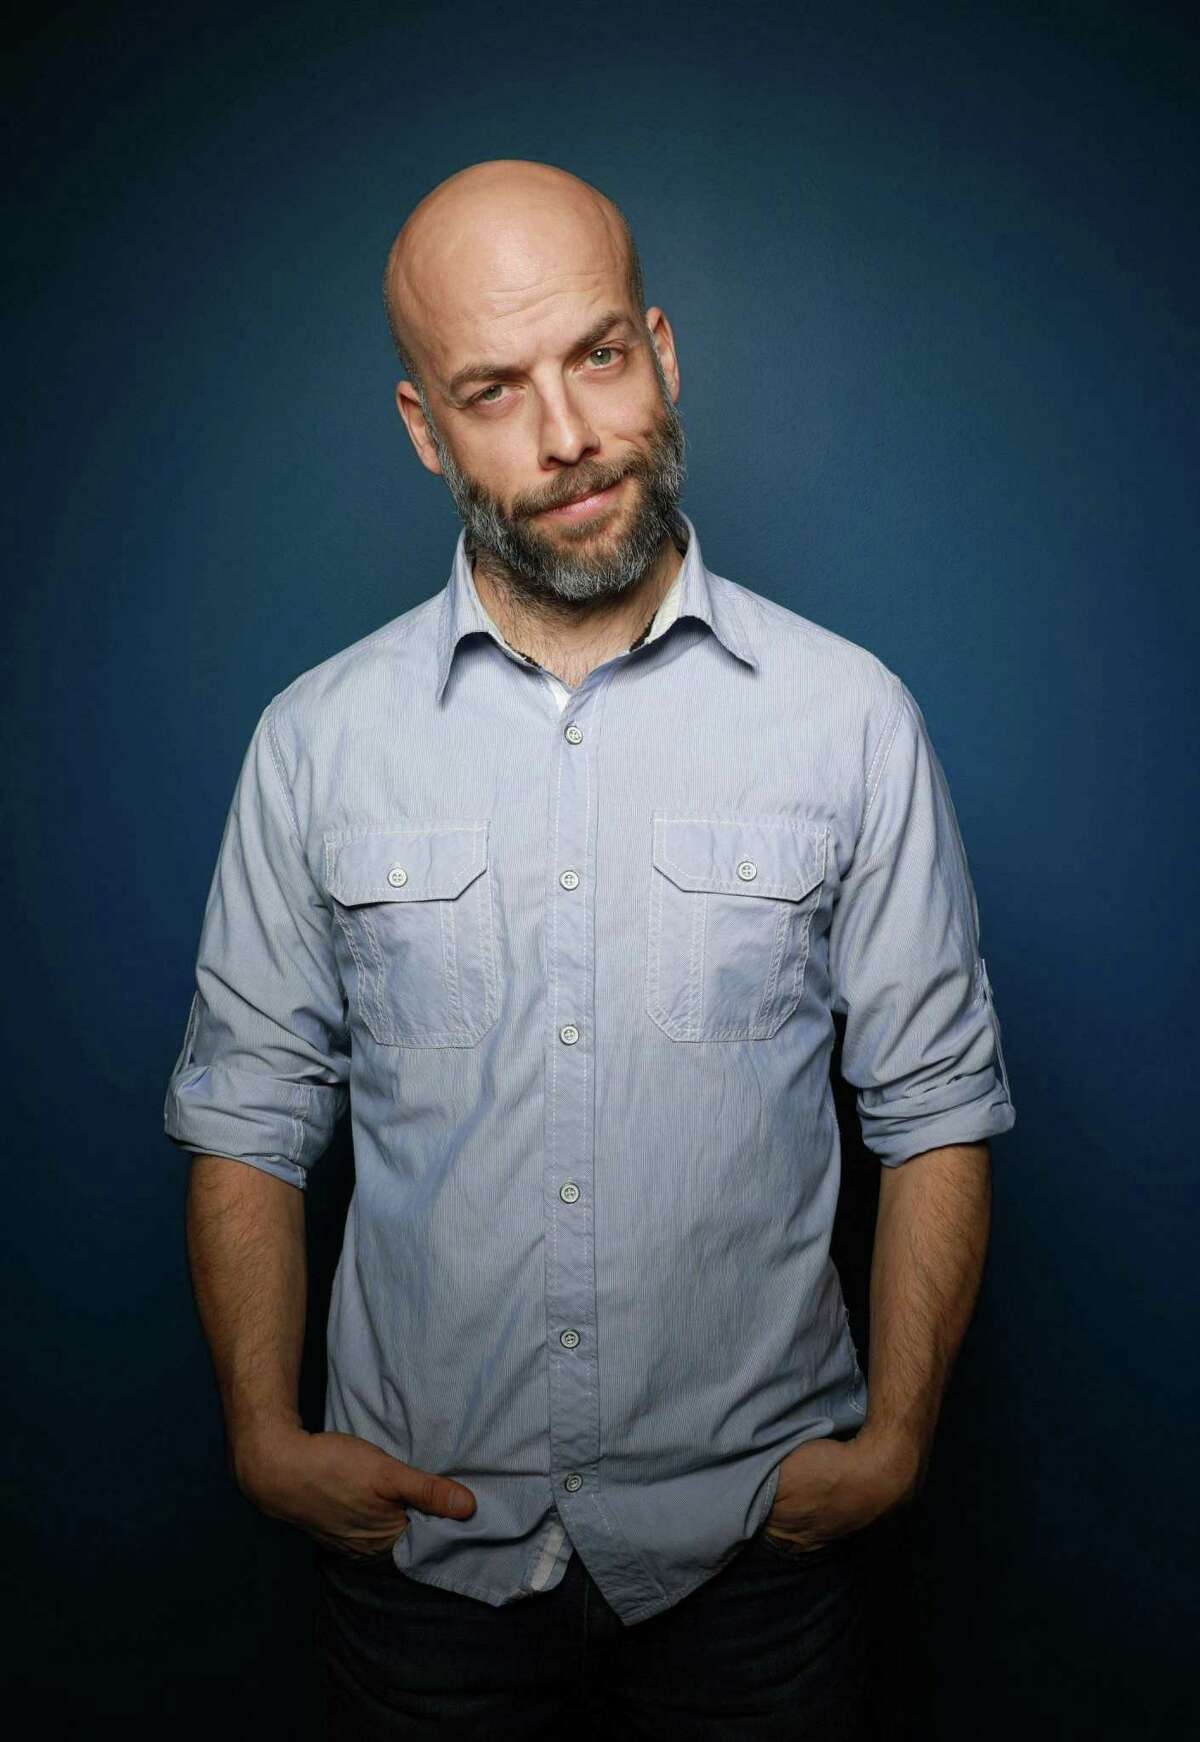 Pete Dominick will headline at The Treehouse Comedy Club at The Westport Inn on April 13.